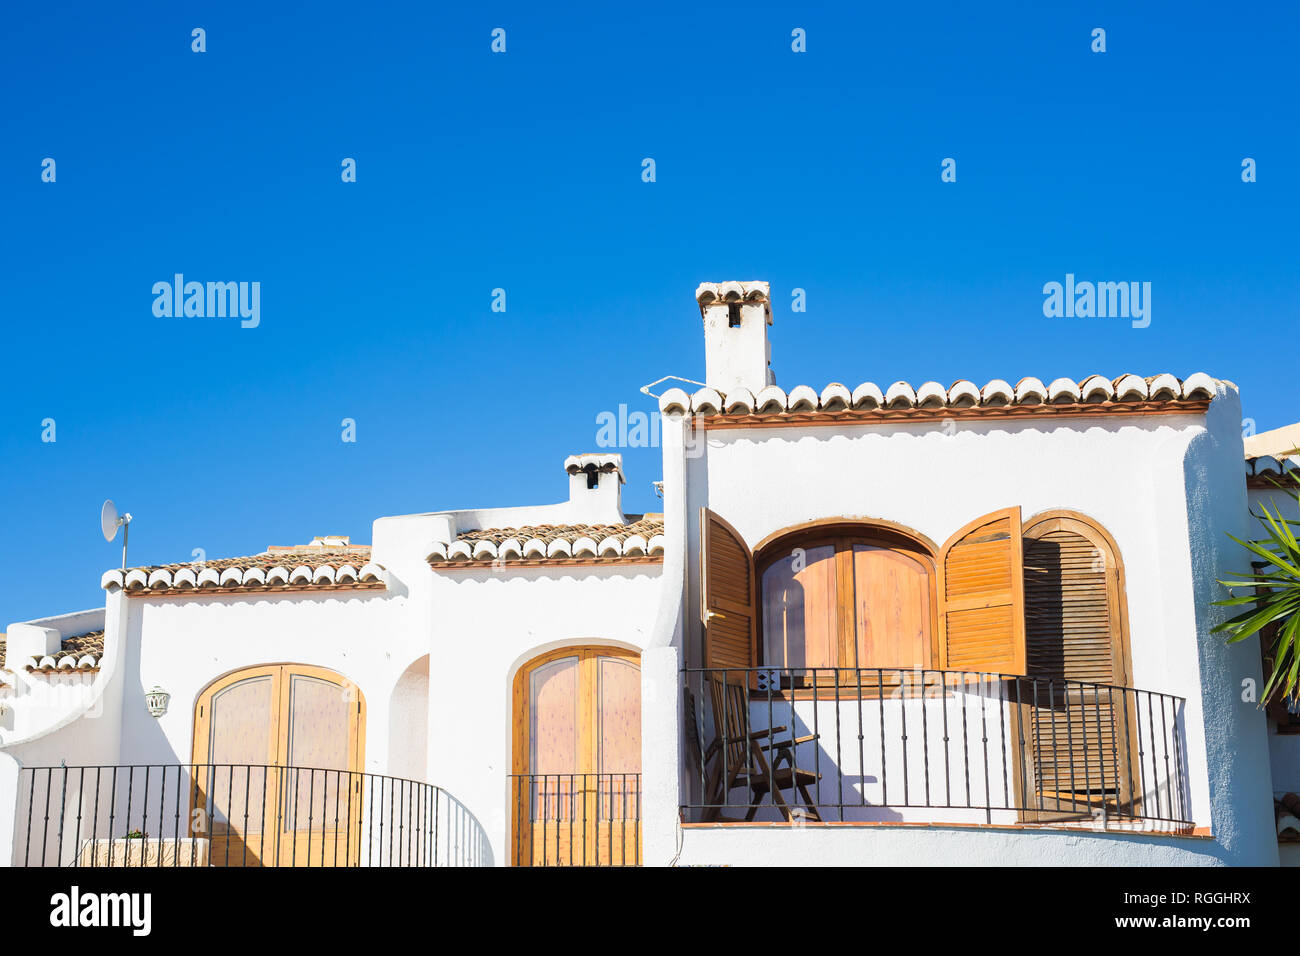 Design Architecture And Exterior Concept Modern Balconies Stock Photo Alamy